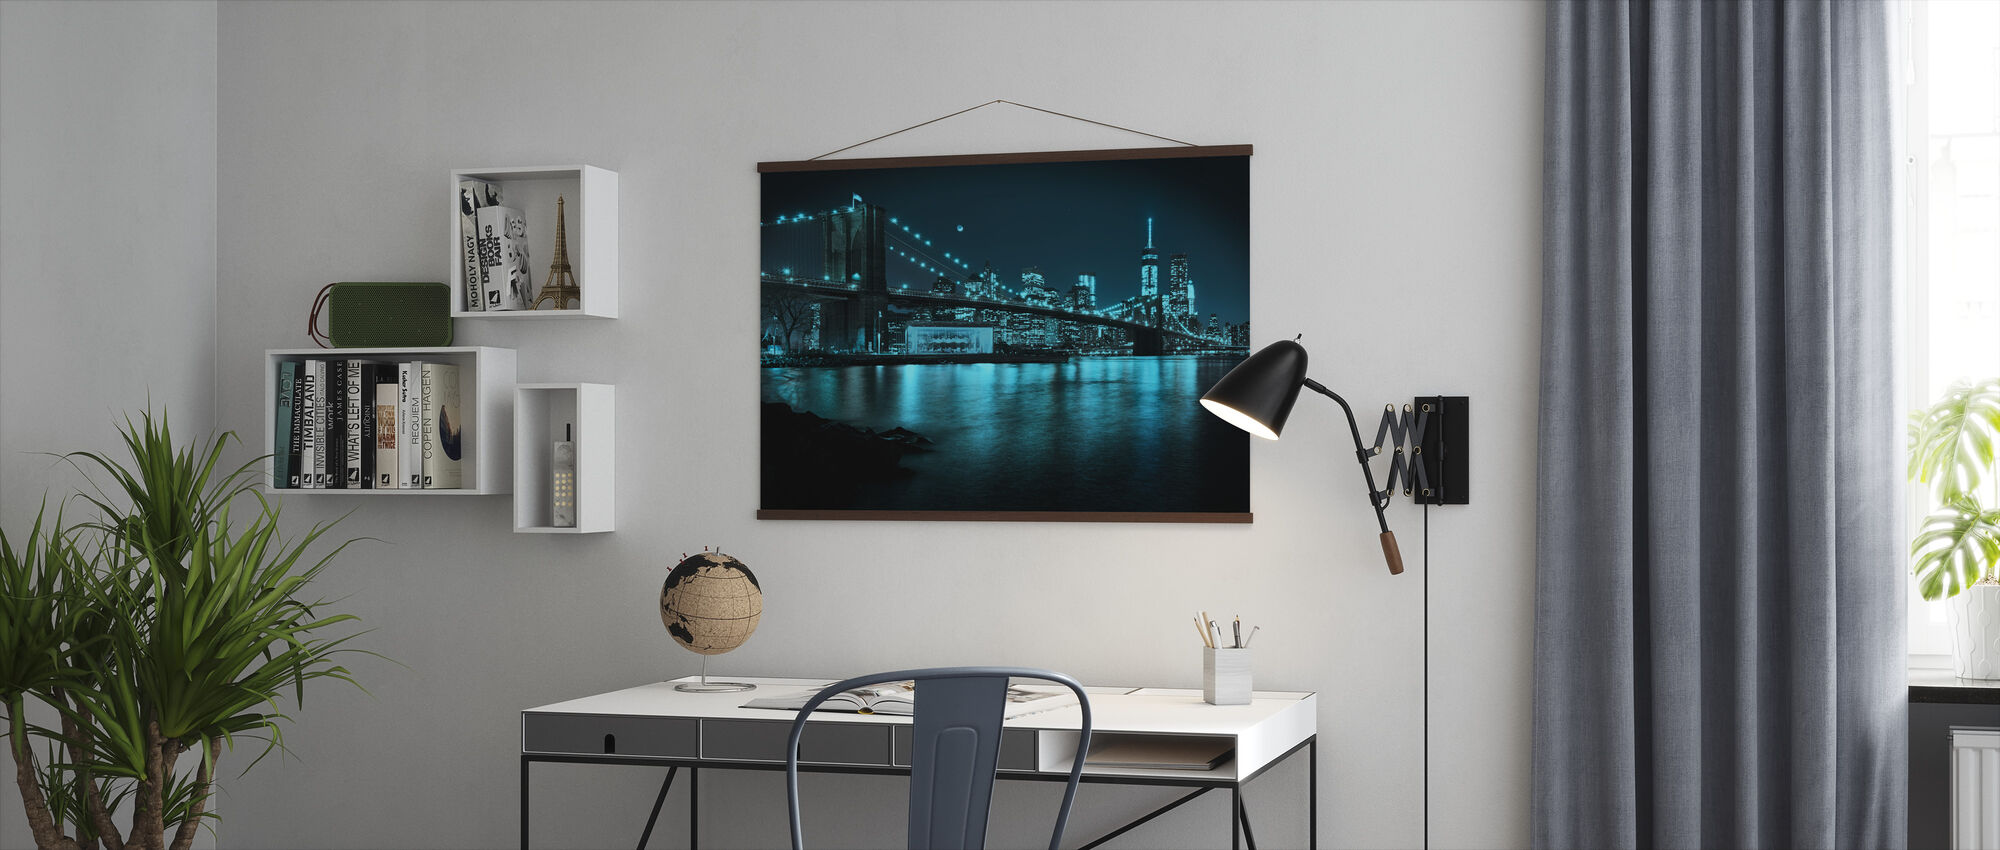 New Freedom Tower and Brooklyn Bridge at night - Poster - Office